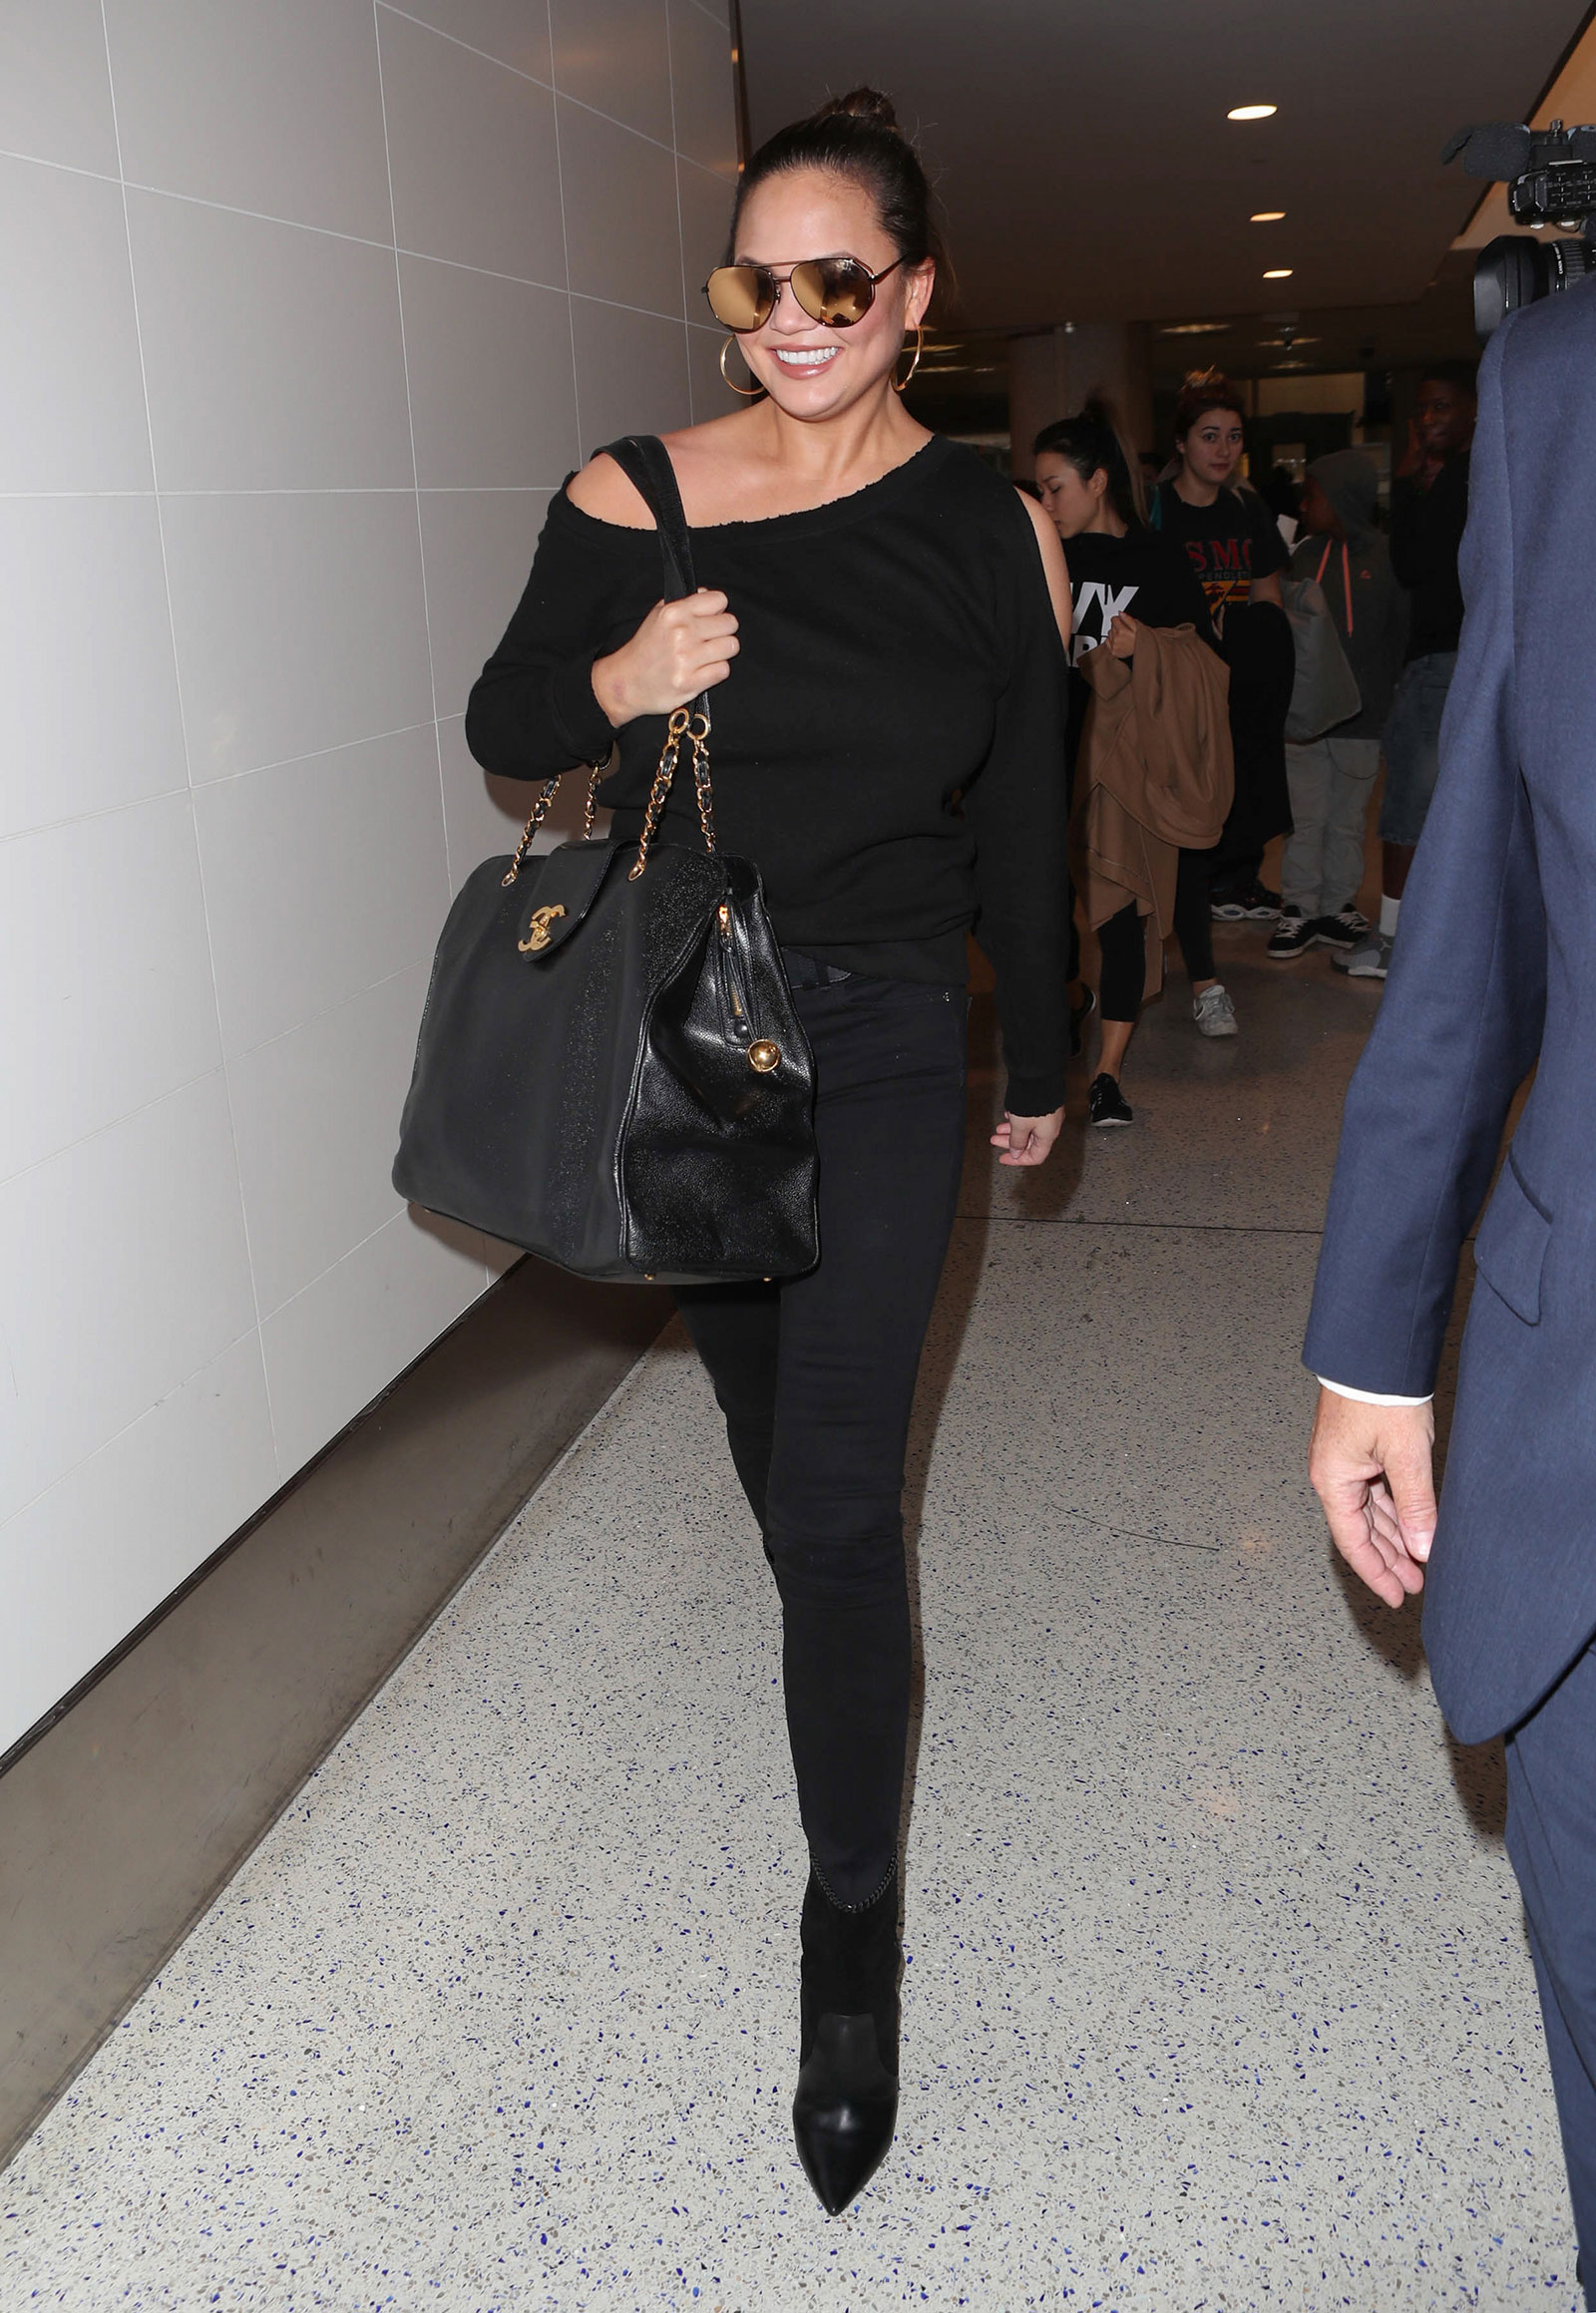 81b1c420a3994b Chrissy Teigen wears a cold shoulder top and Chanel bag while traveling.